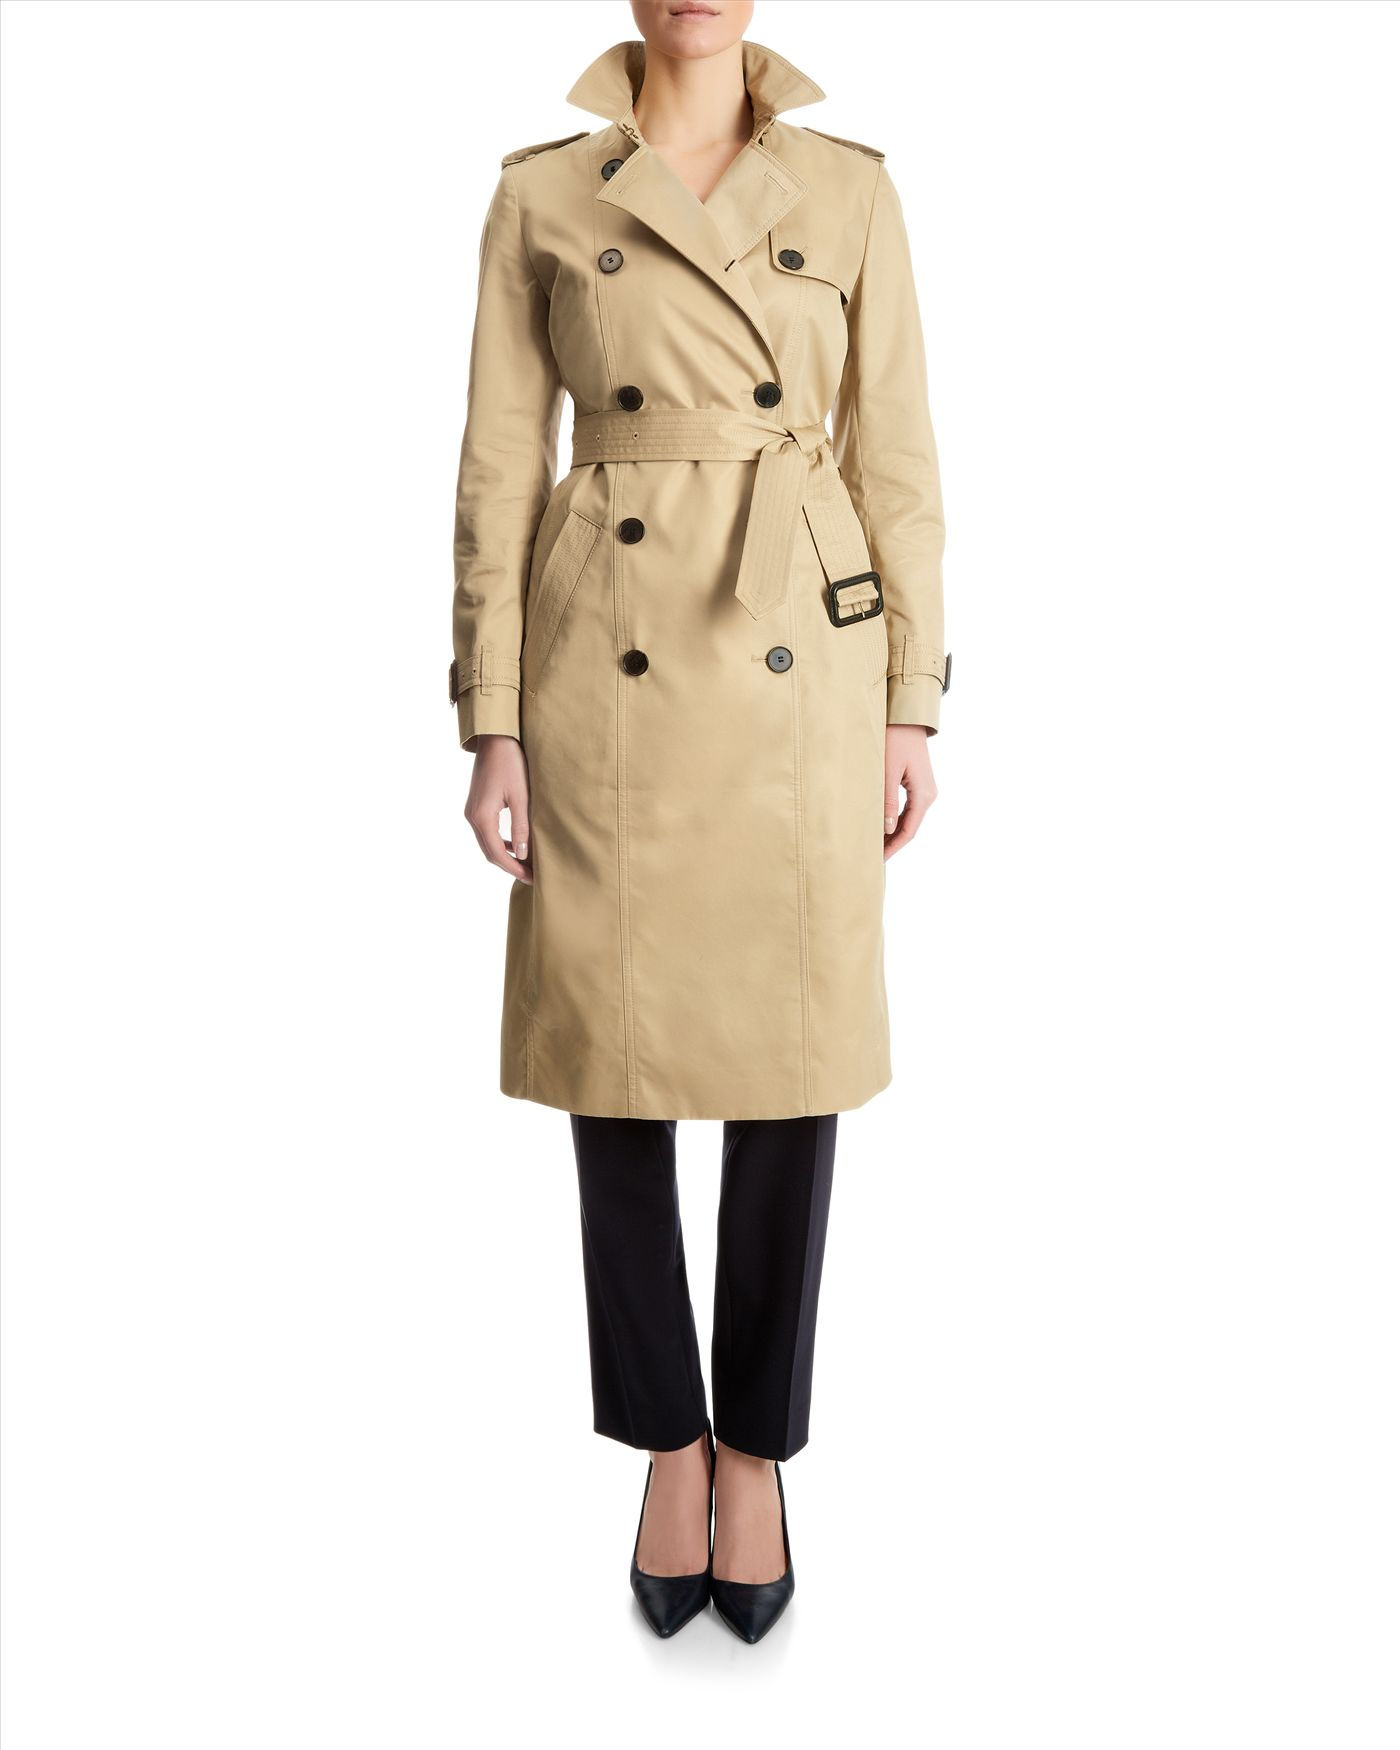 diversified in packaging 60% clearance cheapest price Jaeger Double-breasted Trench Coat in Stone (Natural) - Lyst